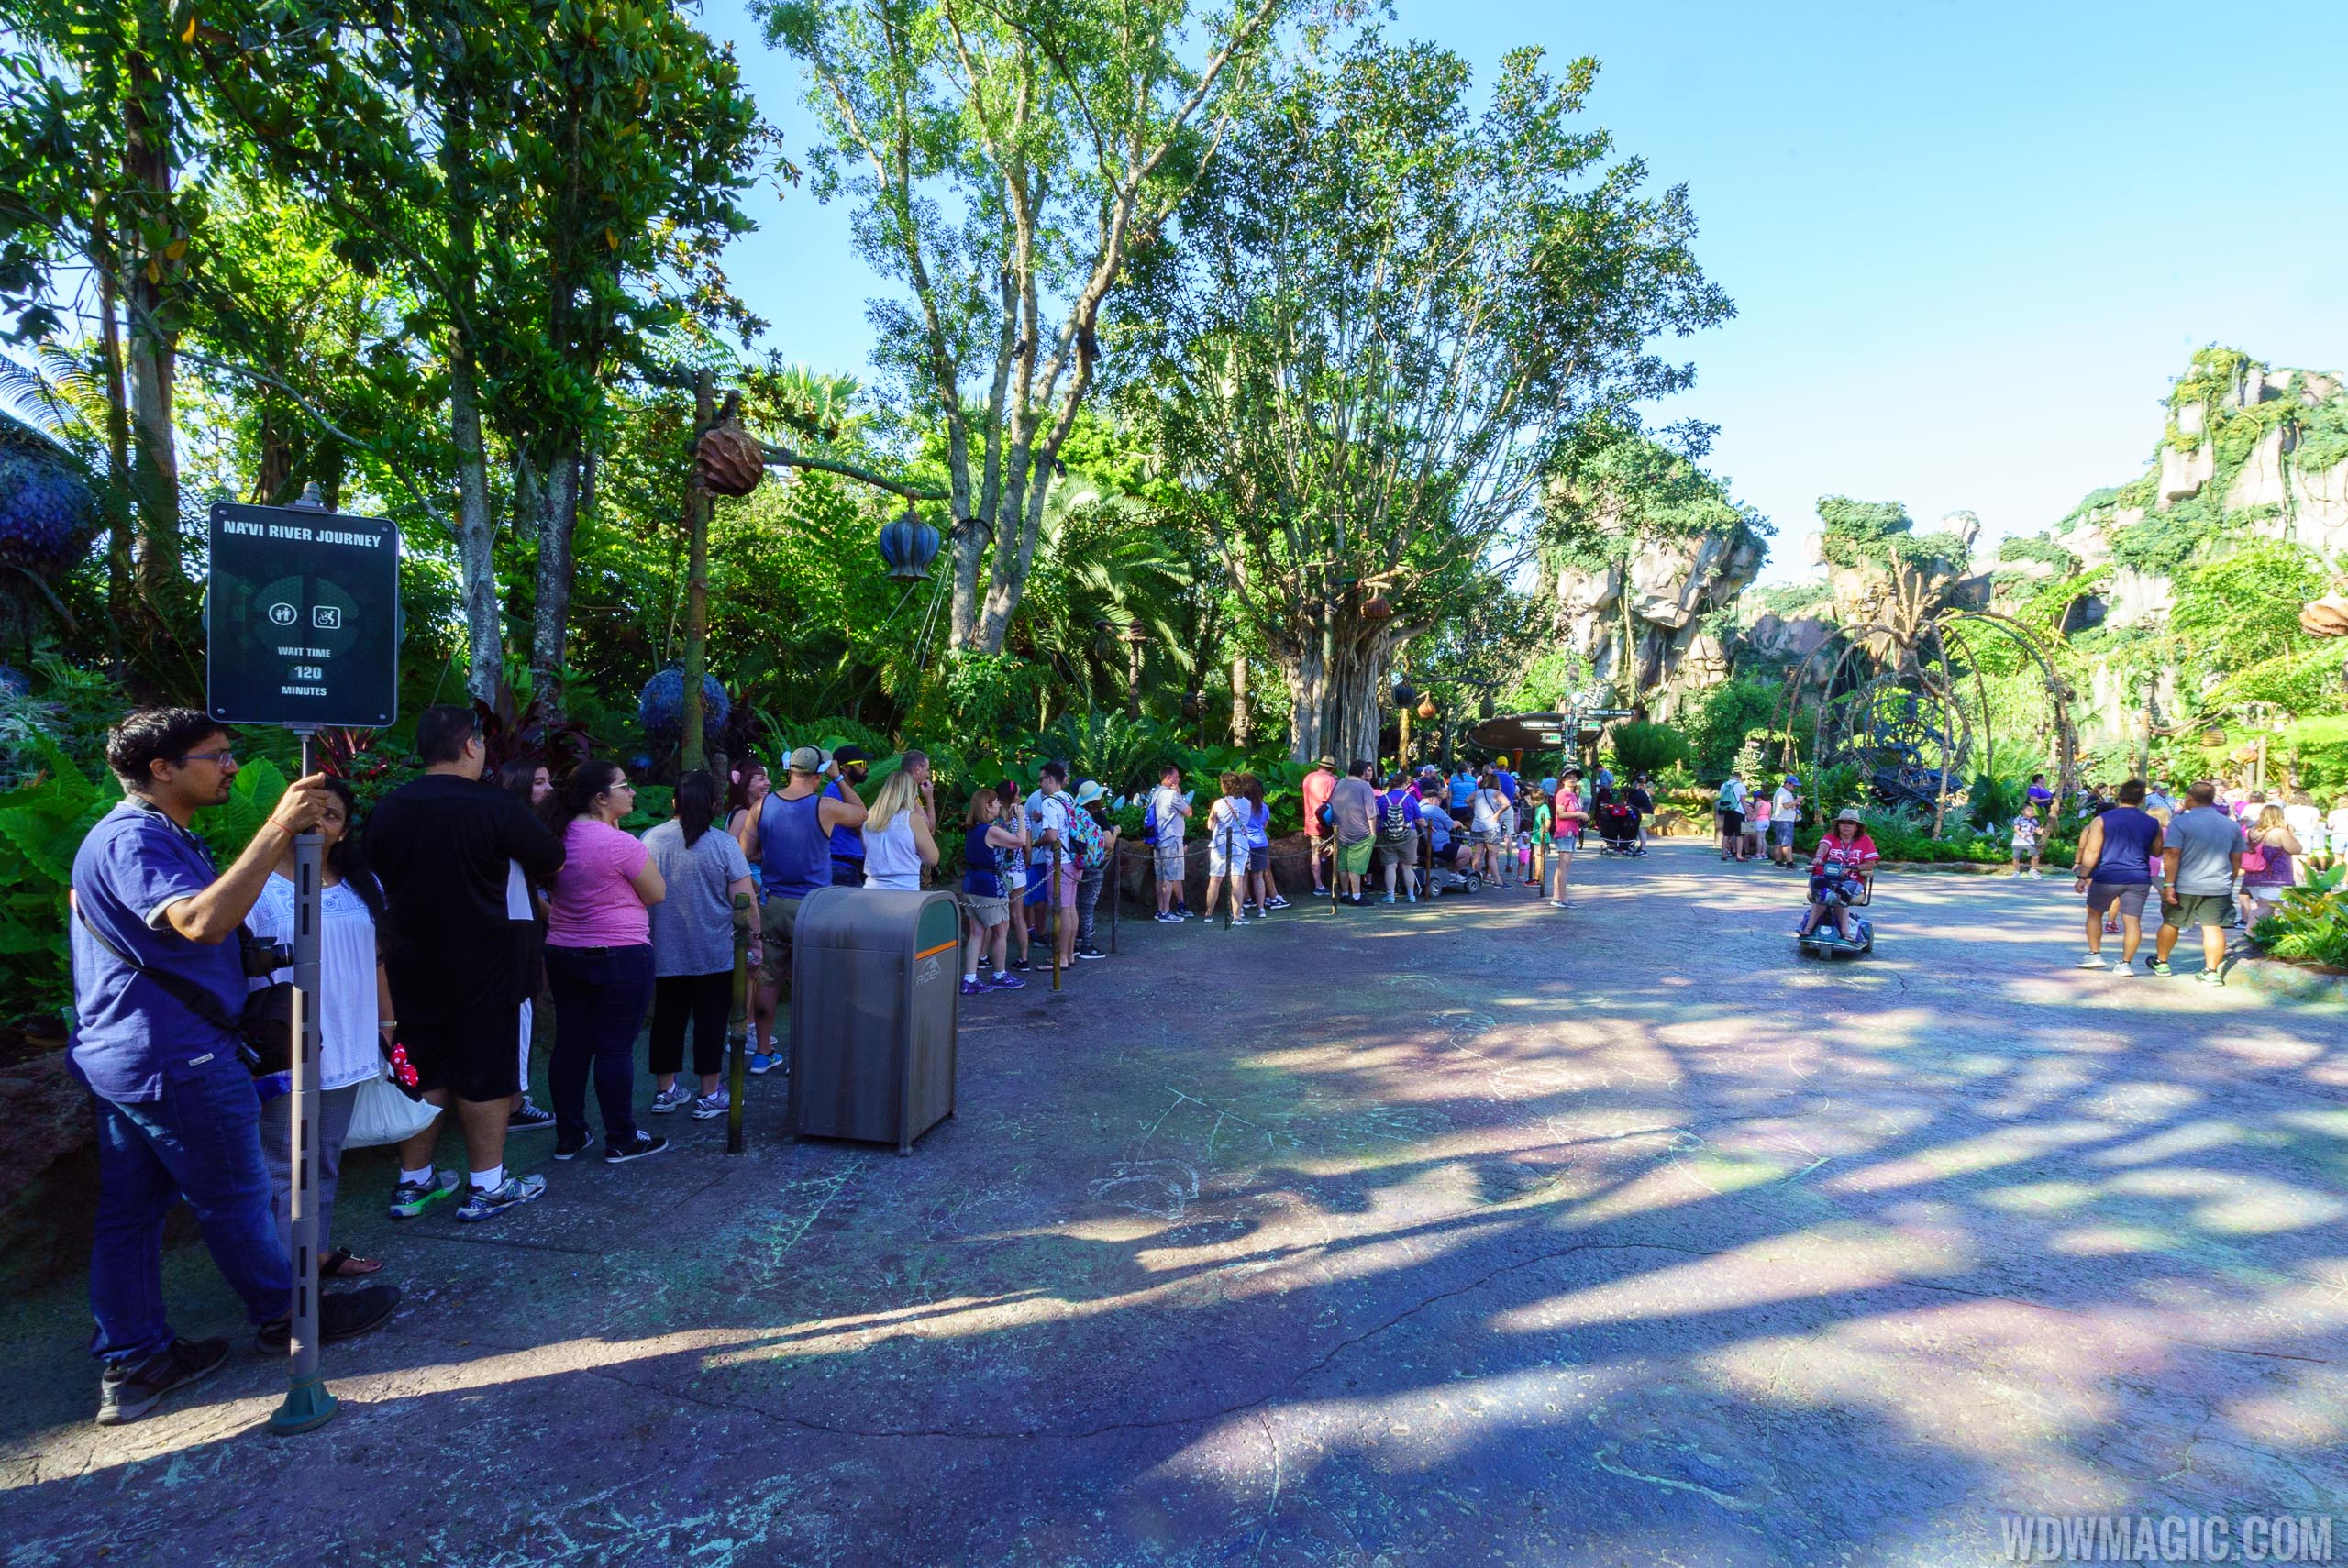 Guests in line for Na'vi River Journey